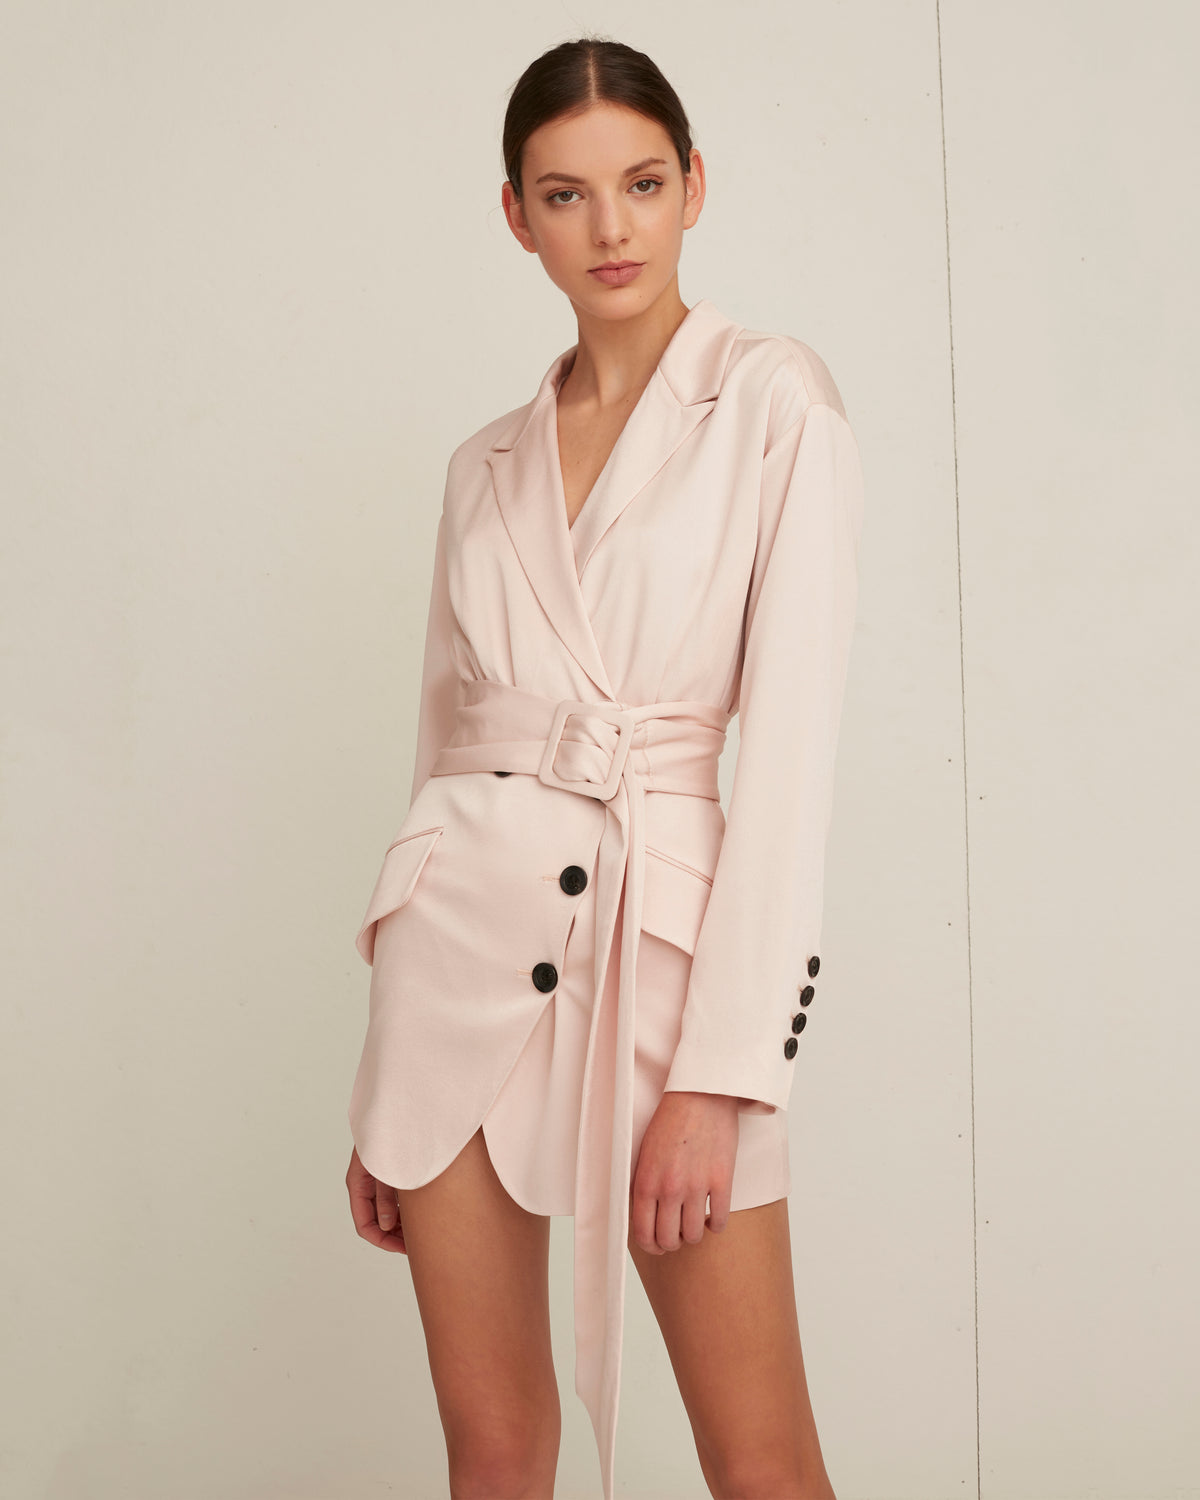 Cyrus Satin Crepe Suit Dress